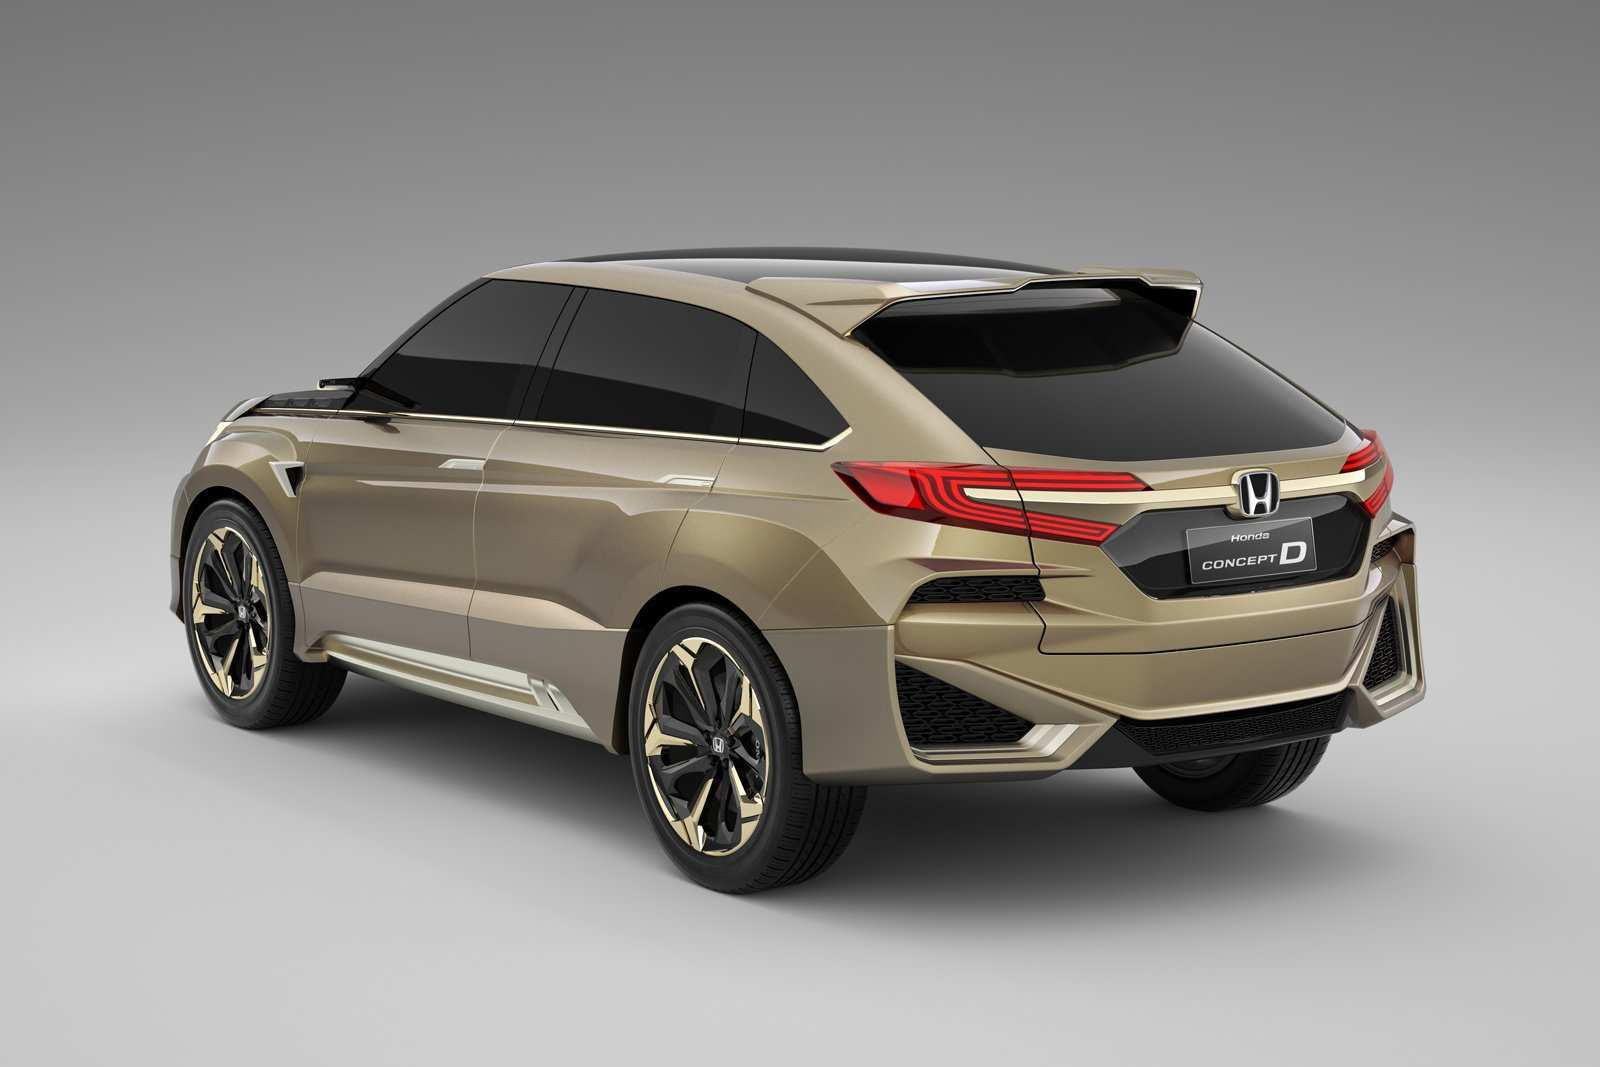 78 Best Review Images Of 2020 Acura Mdx Price and Review for Images Of 2020 Acura Mdx